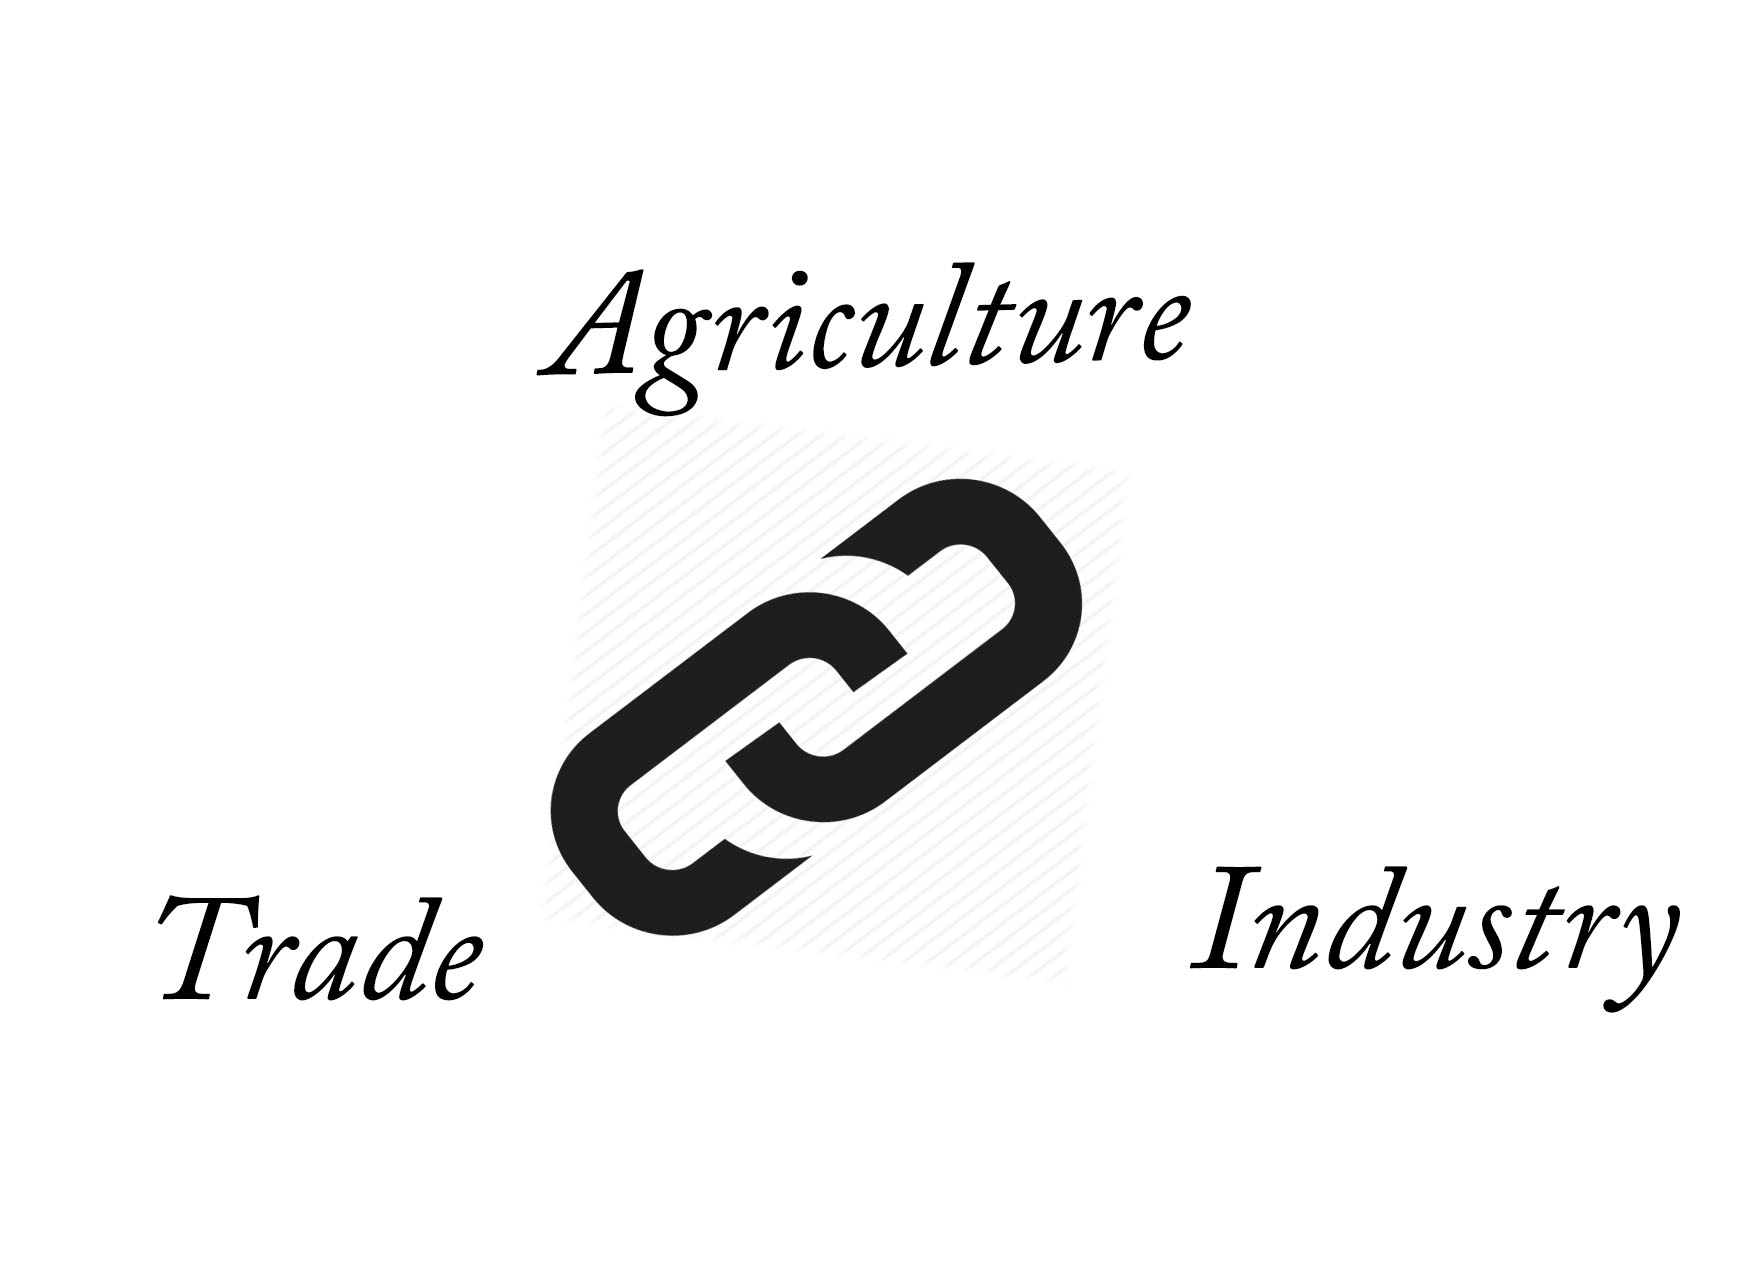 social studies for grade 9 kullabs com relation among agriculture industry and trade